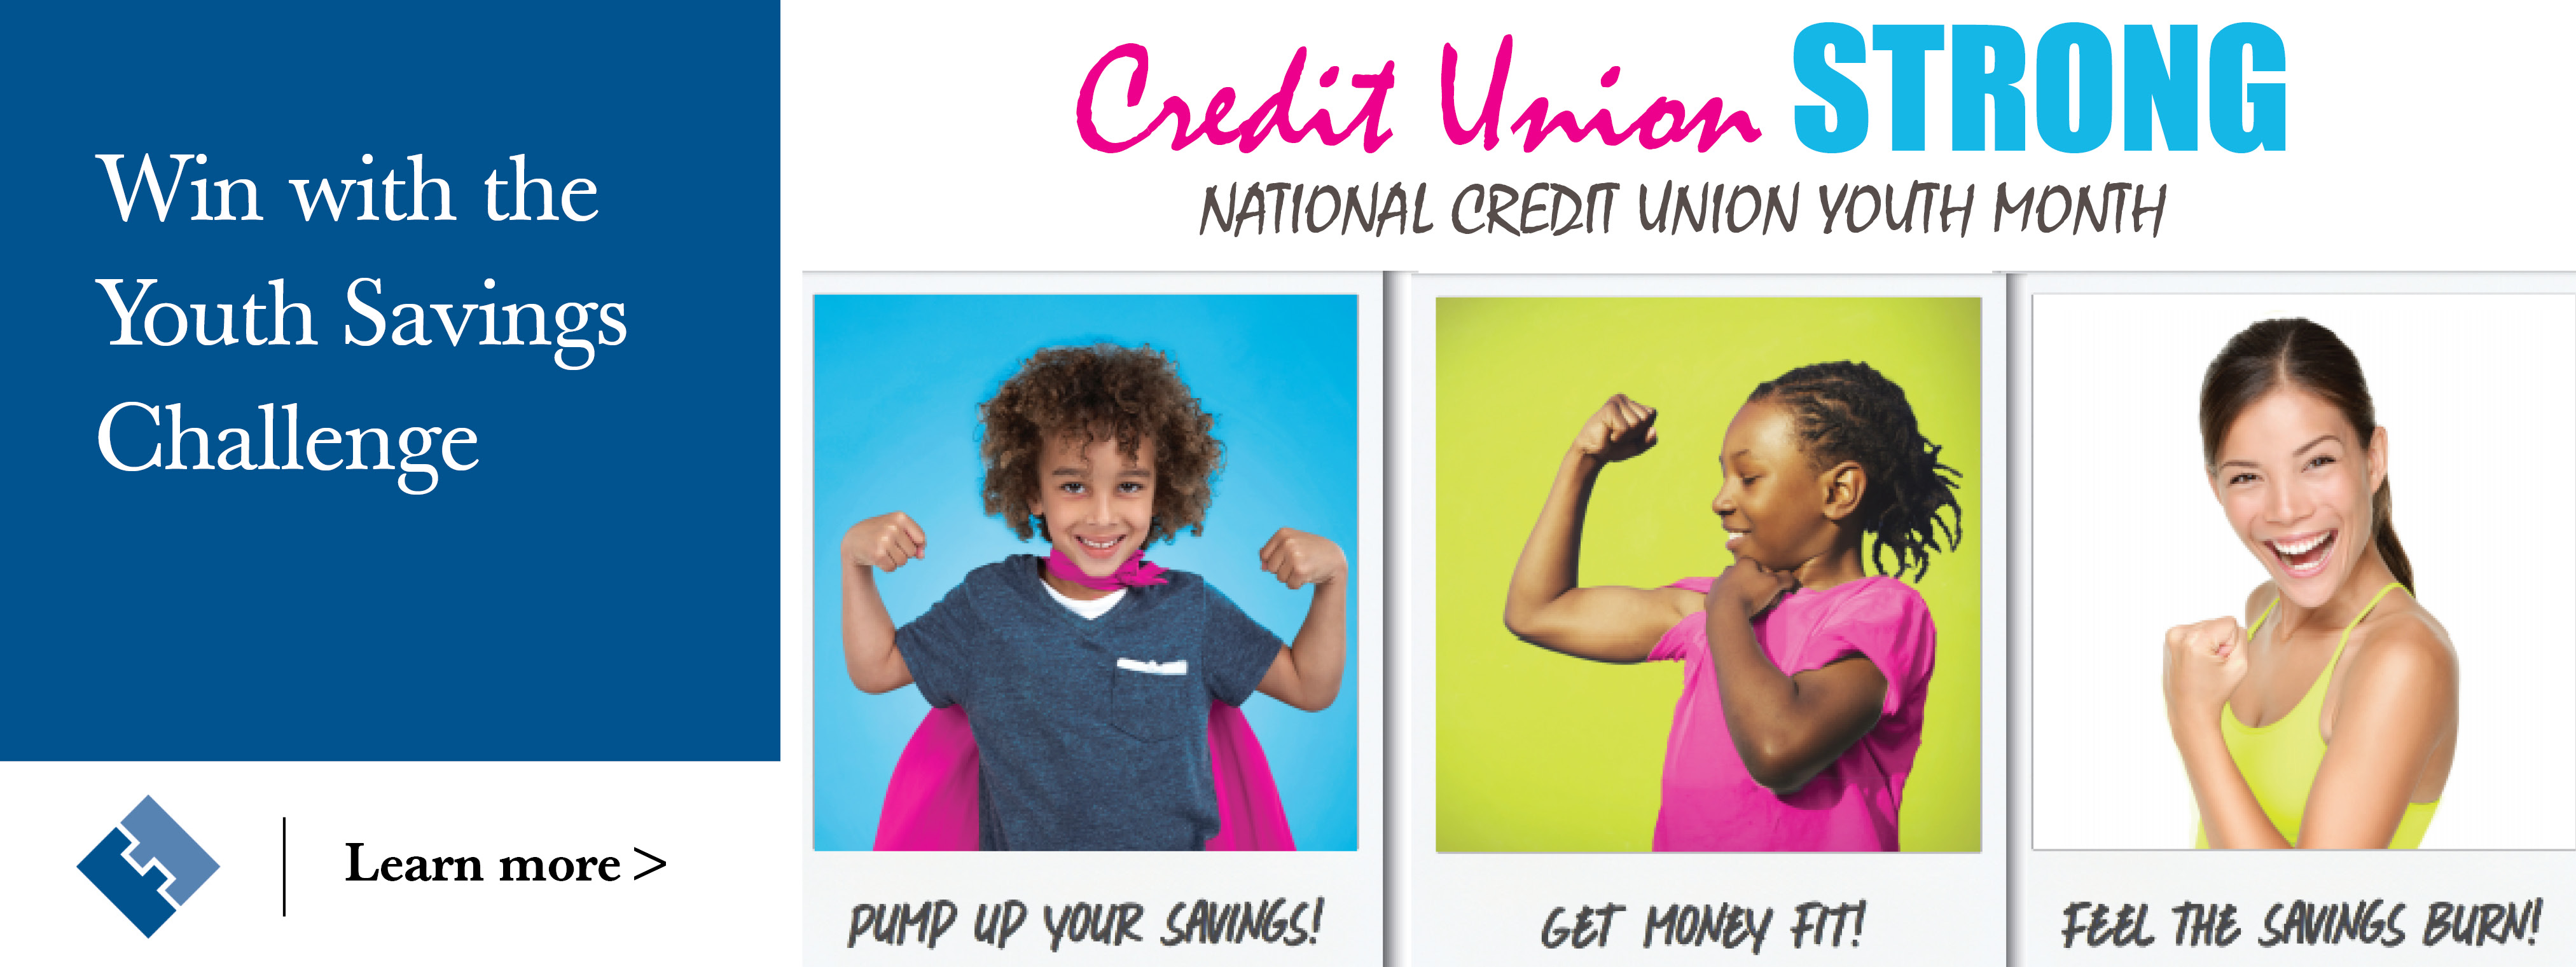 Youth savings month web banner